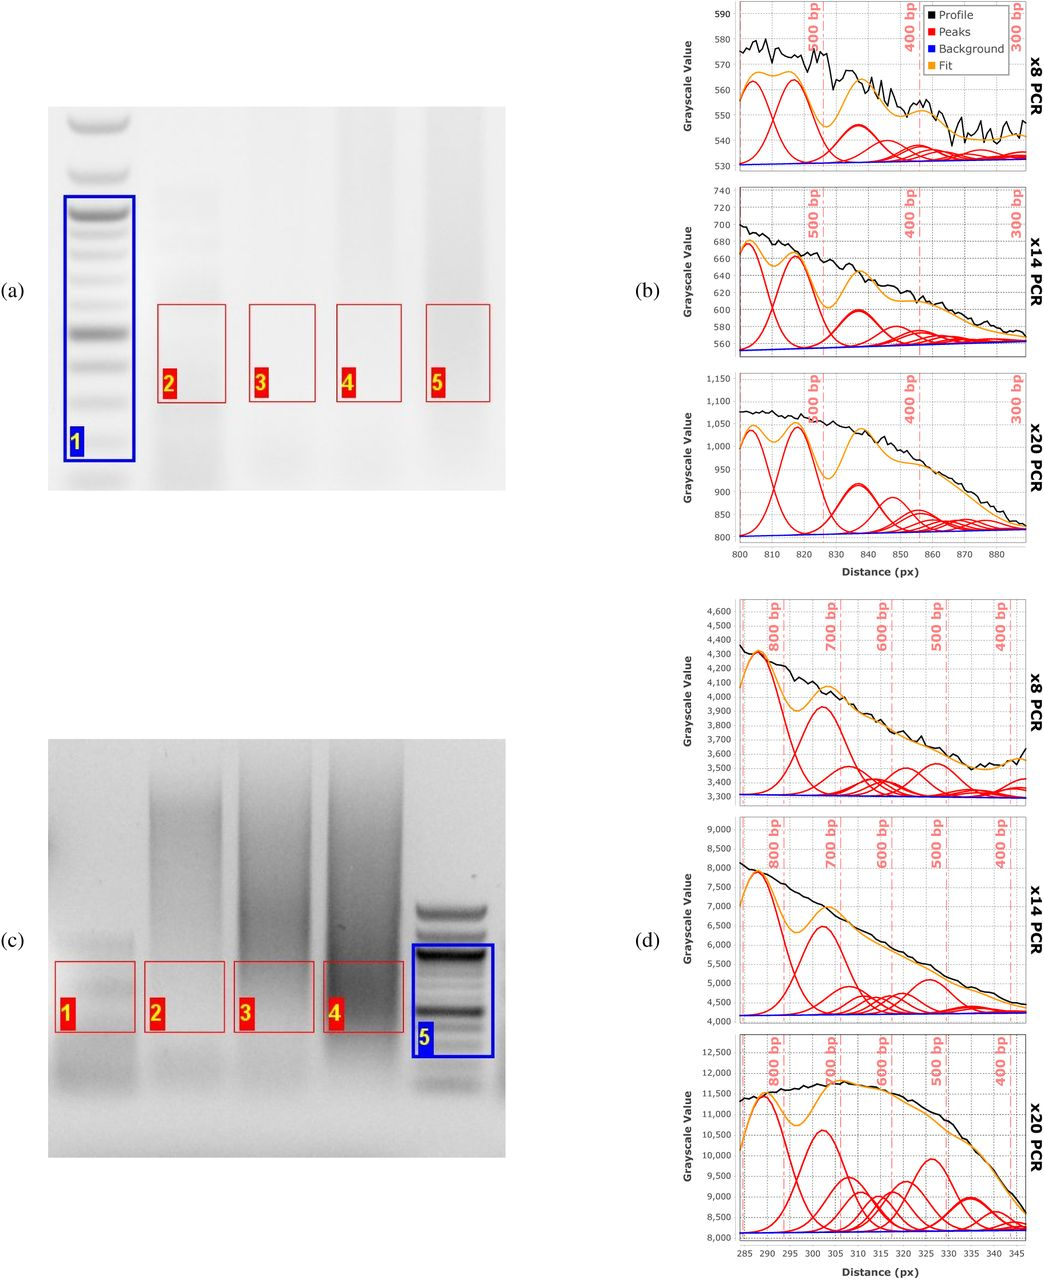 Agarose-gel analysis of tagmentation products of phage- λ DNA analyzed on (a) high-resolution and (c) low-resolution ( i.e ., mini) agarose gels. Size-distribution fits for the high-resolution gel (b) and mini gel (d) of the same tagmented λ -DNA sample subjected to increasing numbers of PCR-amplification cycles (lanes 3-5 in (a), lanes 2-4 in (c)): 8 cycles (top plots), 14 cycles (middle plots), and 20 cycles (bottom plots) in both (b) and (d). Vertical dashed lines (light red in (b), (d)) give the positions of maxima in the discrete molecular-weight ladder (blue ROI in (b), (b)).